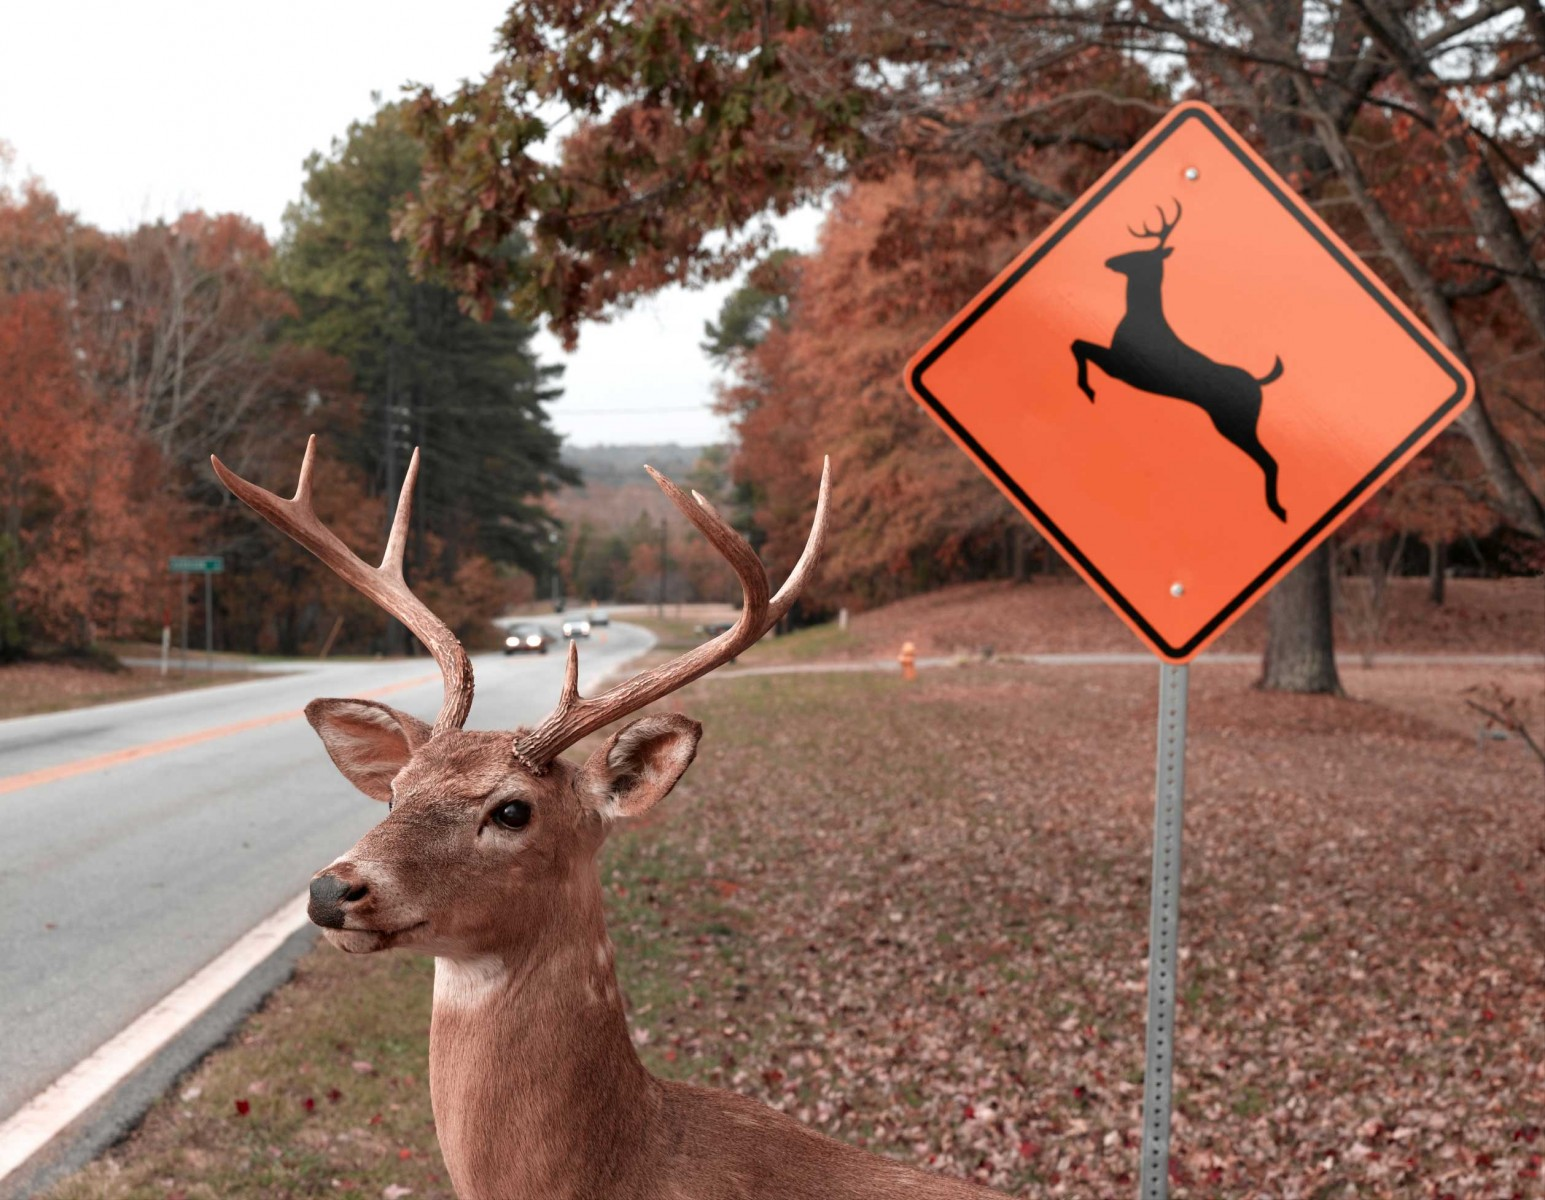 Average Car Insurance >> Avoid car-deer collisions with defensive driving habits